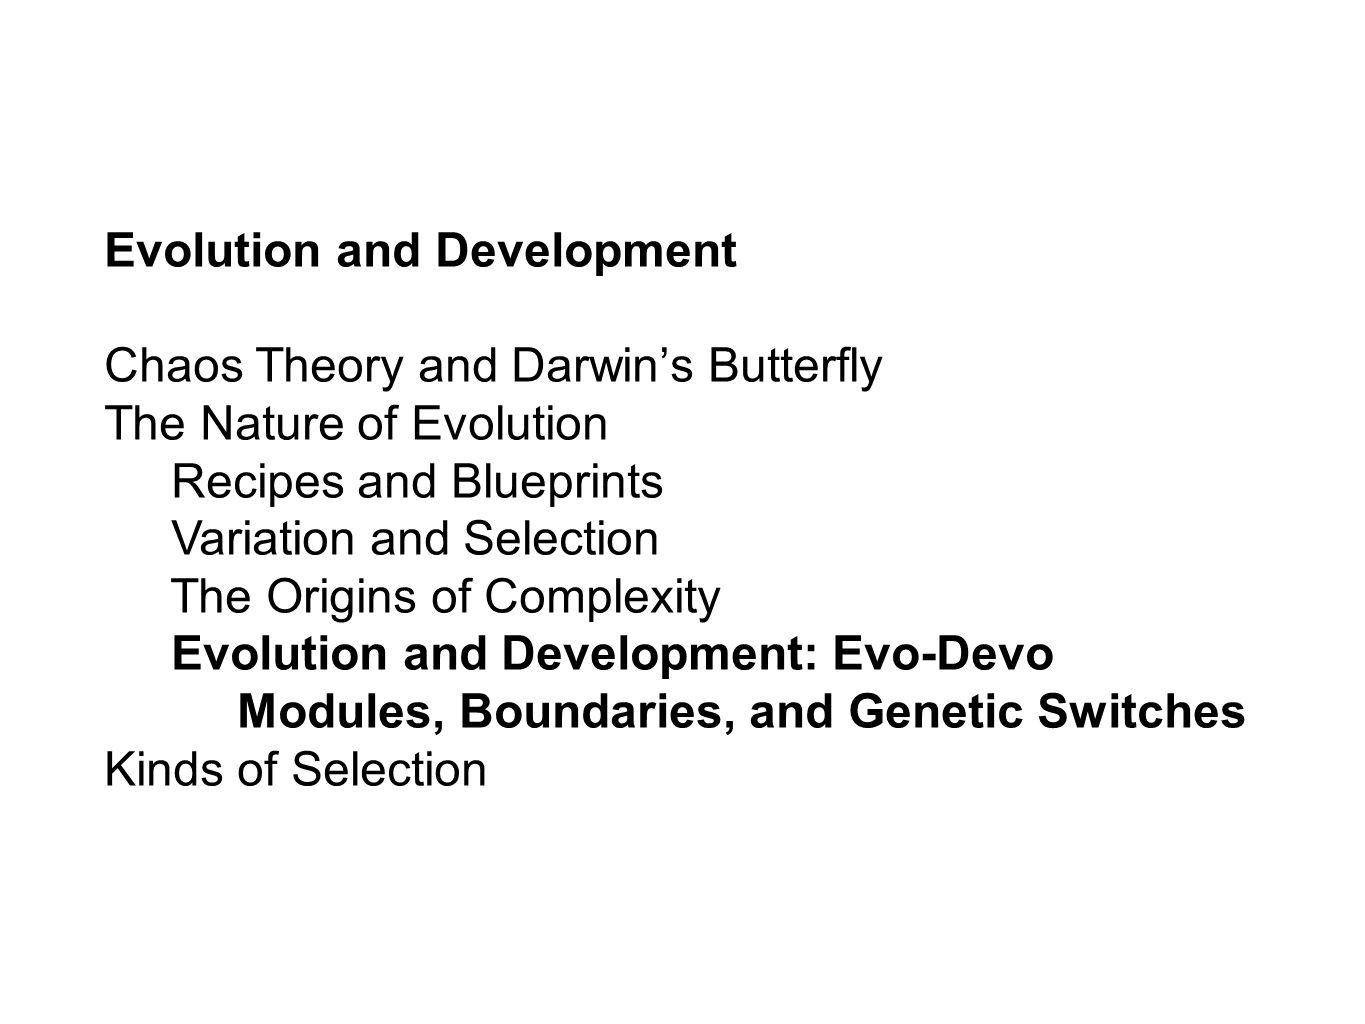 Evolution and Development Chaos Theory and Darwins Butterfly The Nature of Evolution Recipes and Blueprints Variation and Selection The Origins of Com